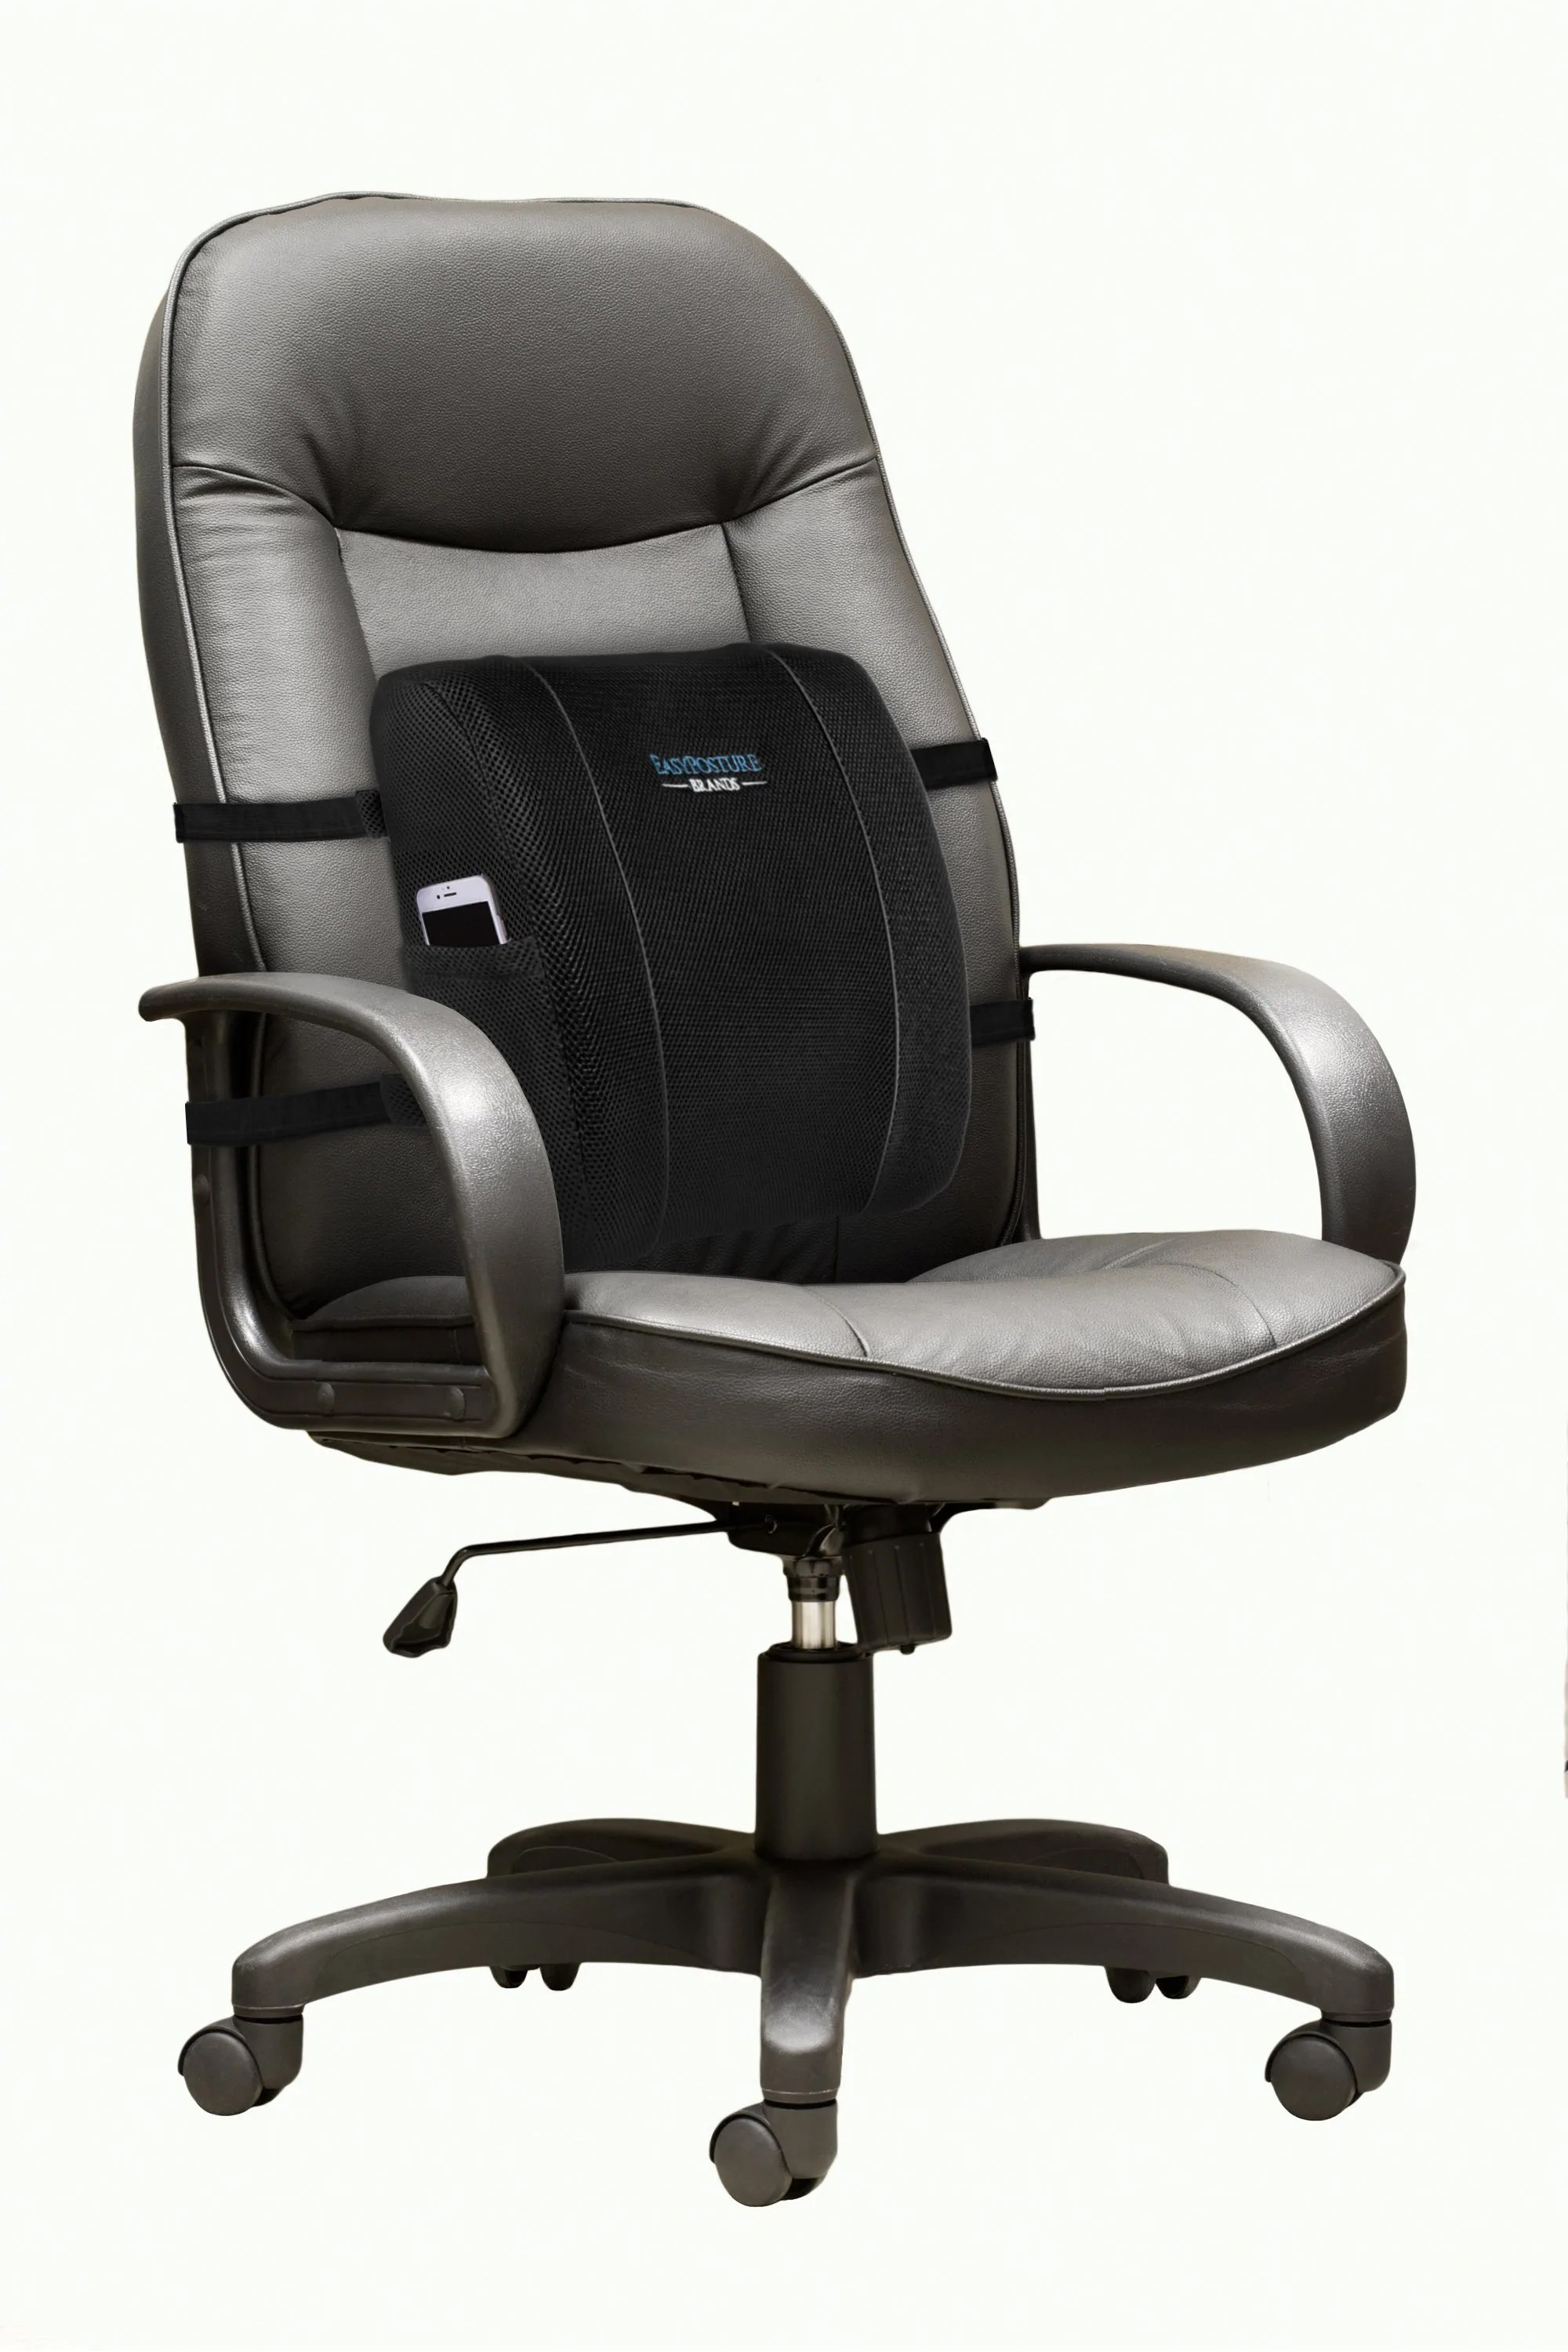 posture support chairs office adec performer chair parts memory foam lumbar cushion easy brands